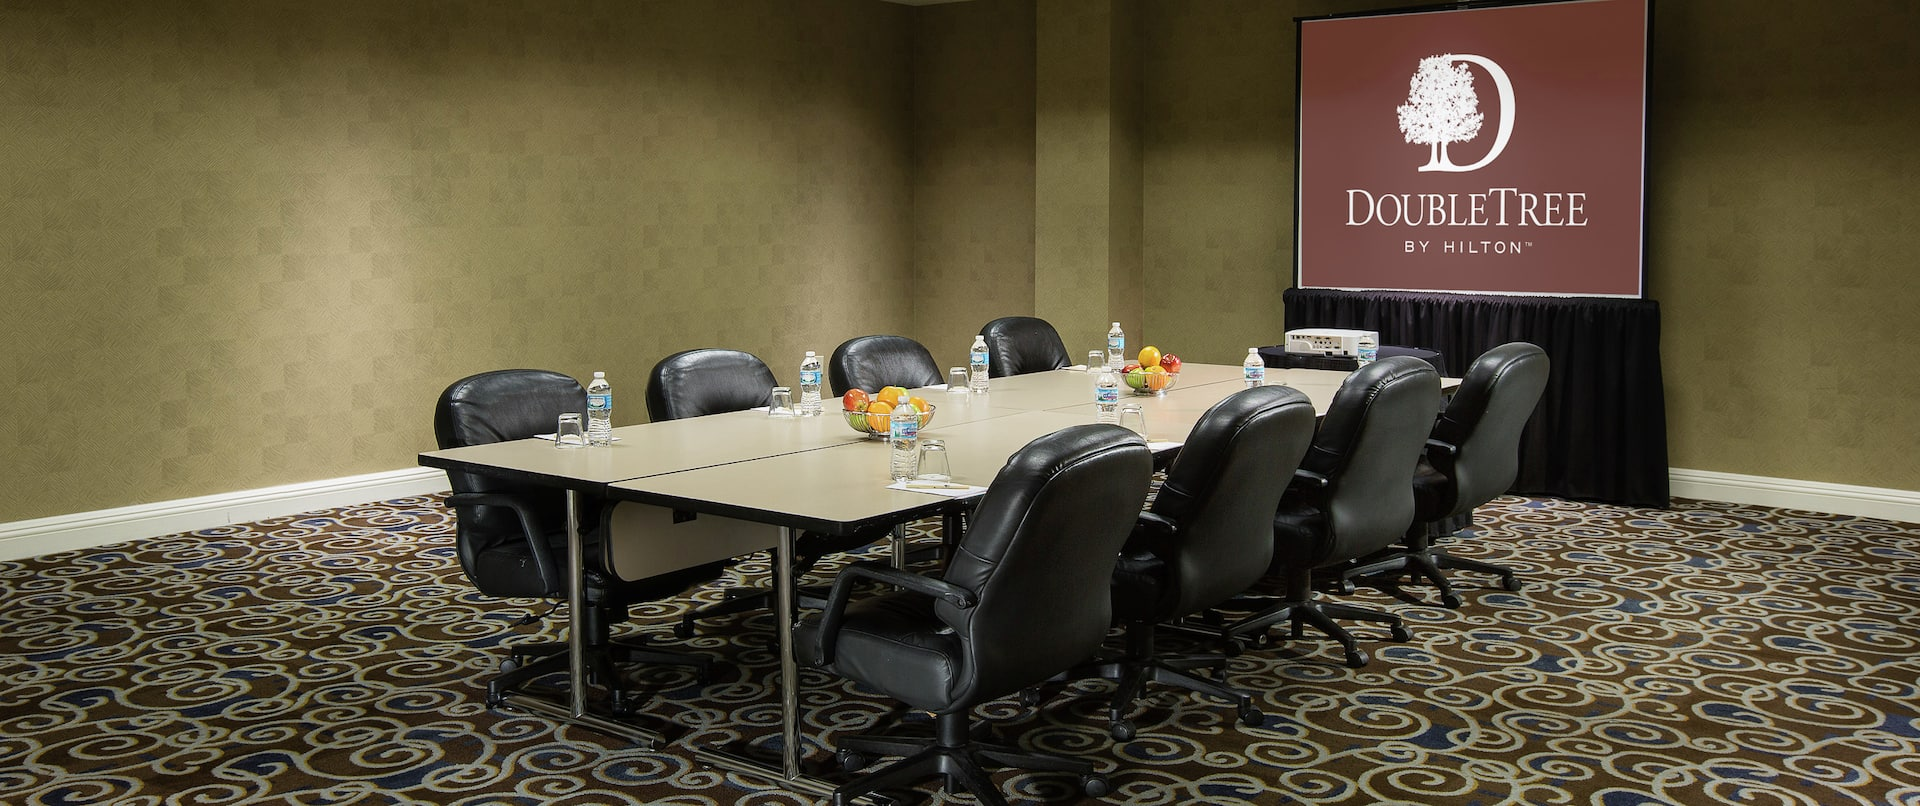 Meeting Room With Presentation Screen and Seating For Eight at Boardroom Table